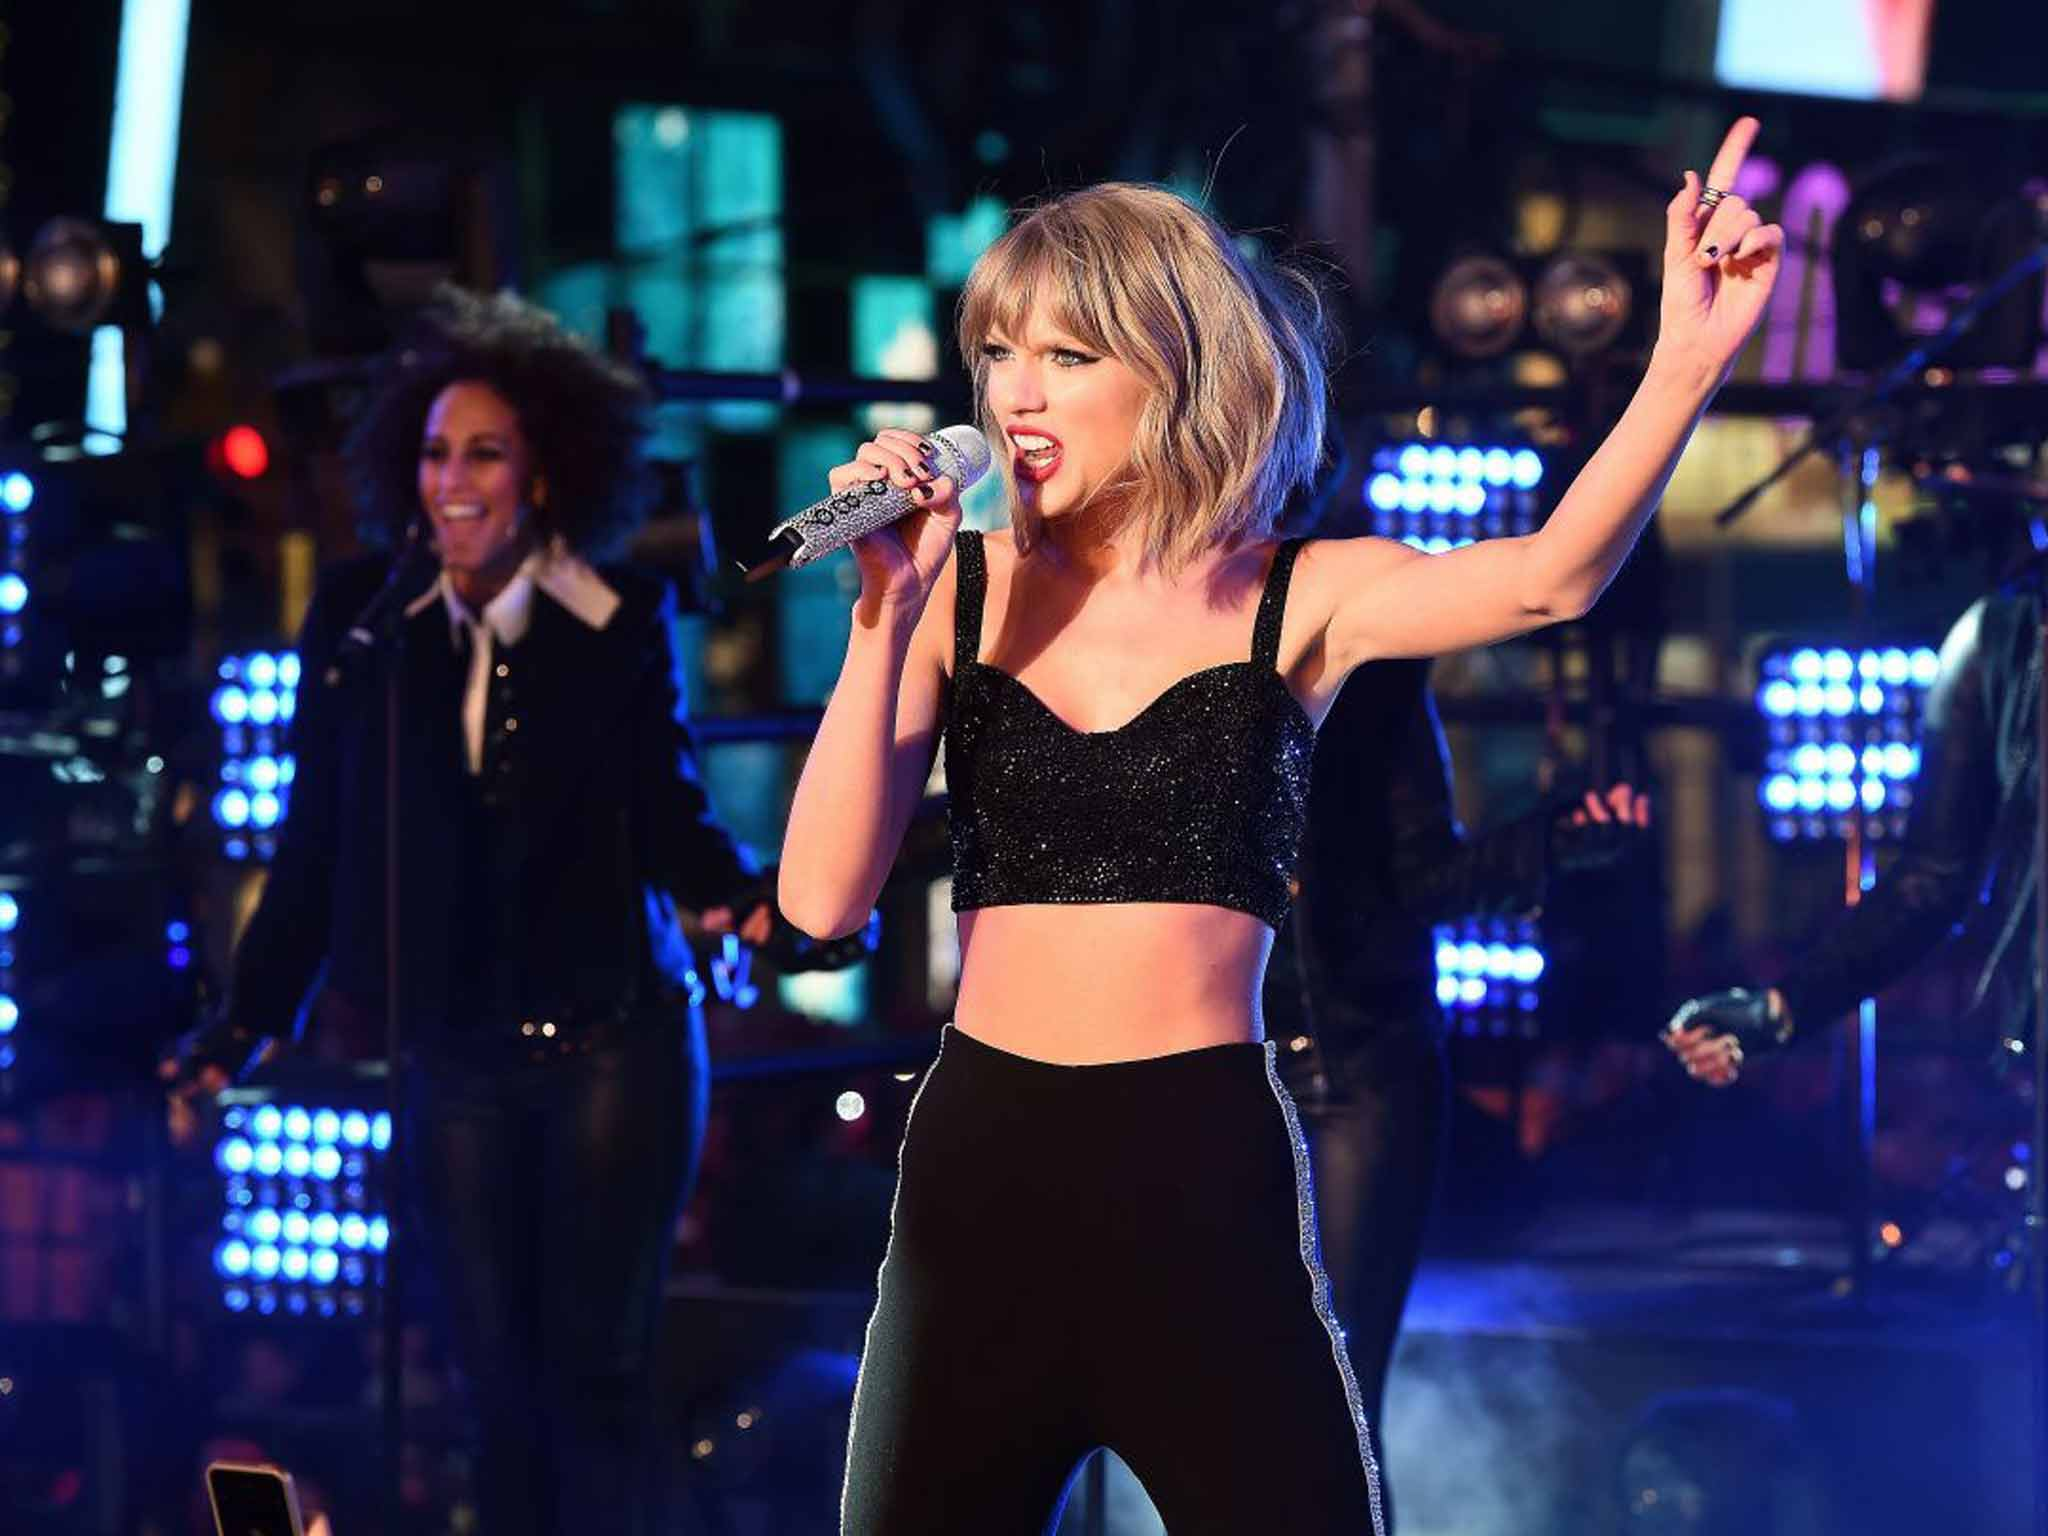 Taylor Swift puts back catalogue on Jay Z's streaming service Tidal after shunning Spotify